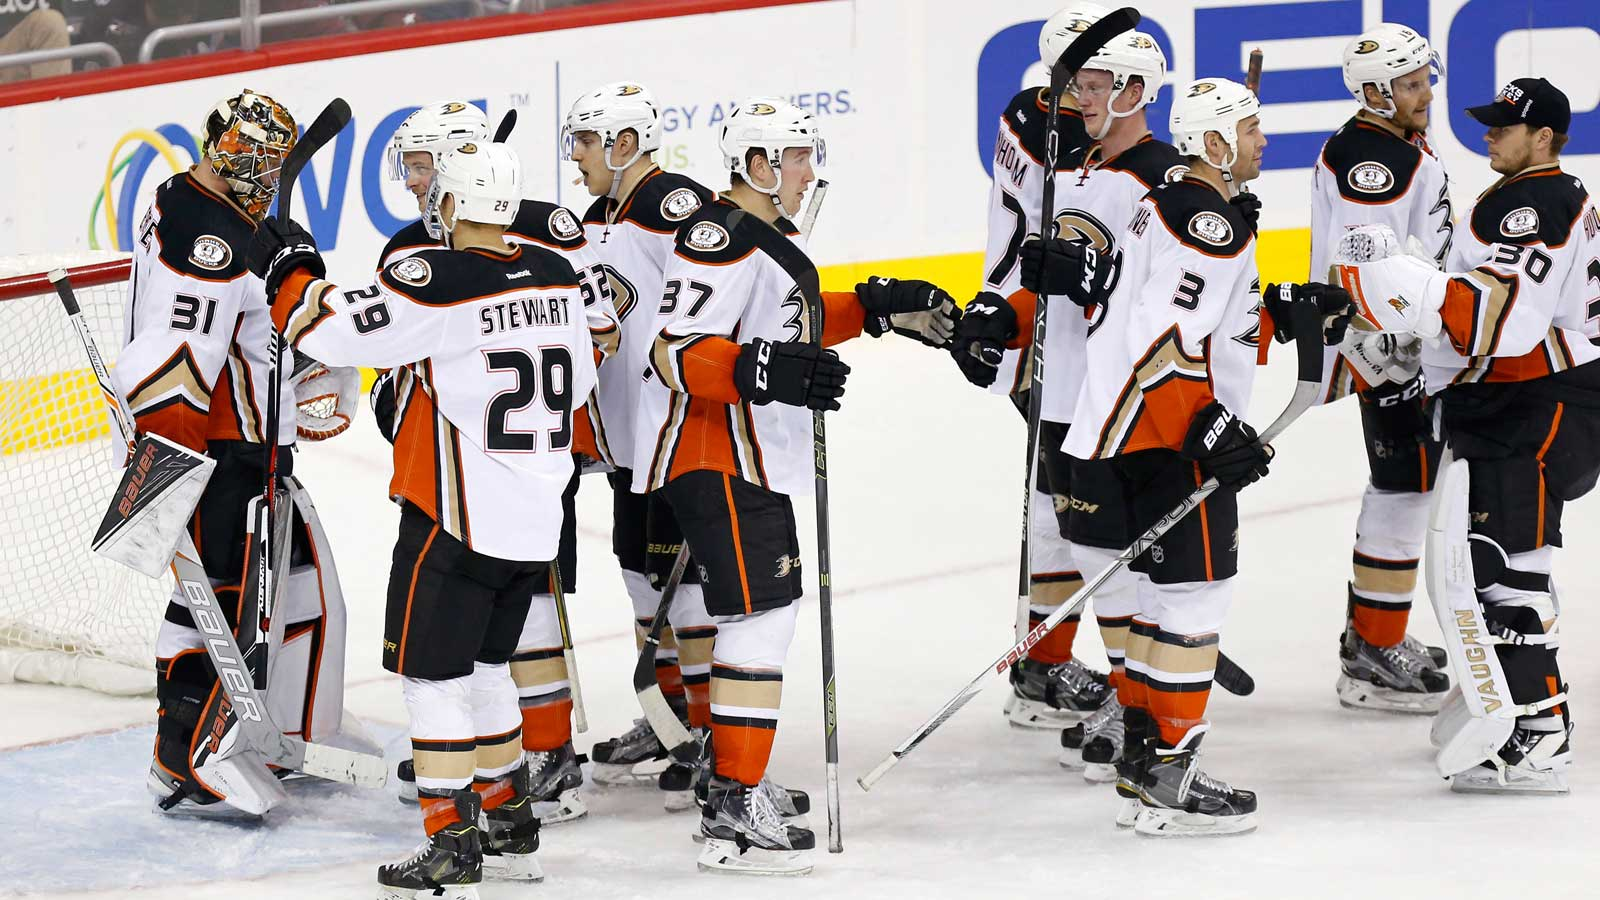 Ducks clinch Pacific Division with win over Capitals